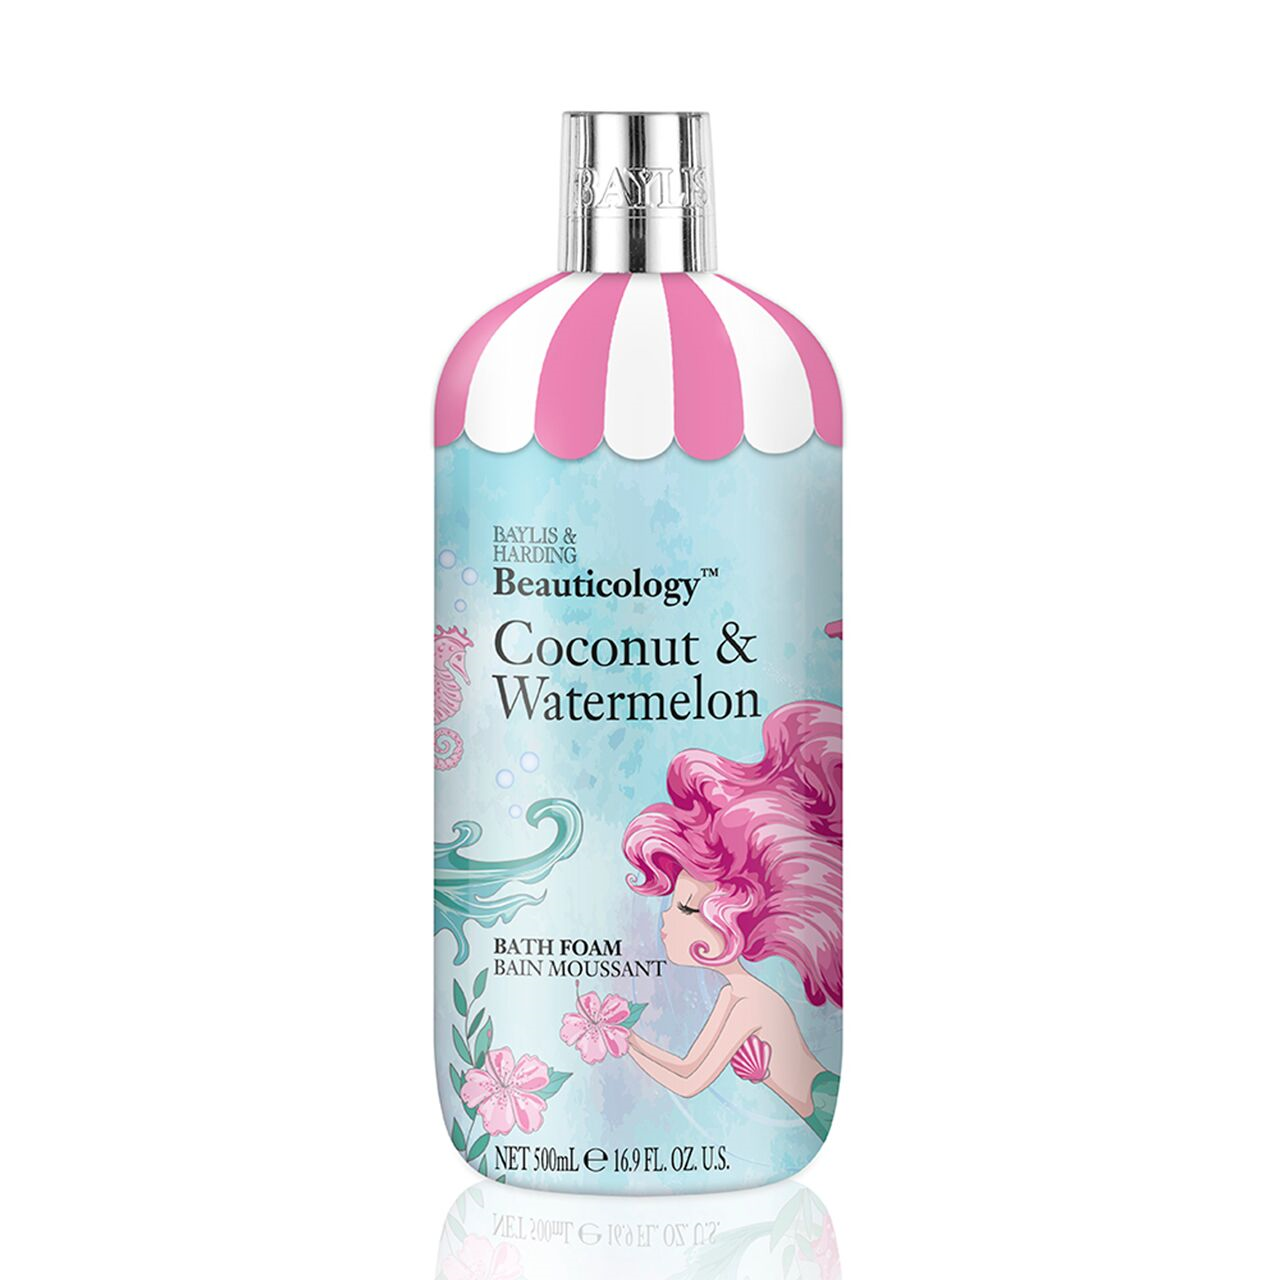 Baylis & Harding Beauticology Coconut & Watermelon 500ml Bath Foam